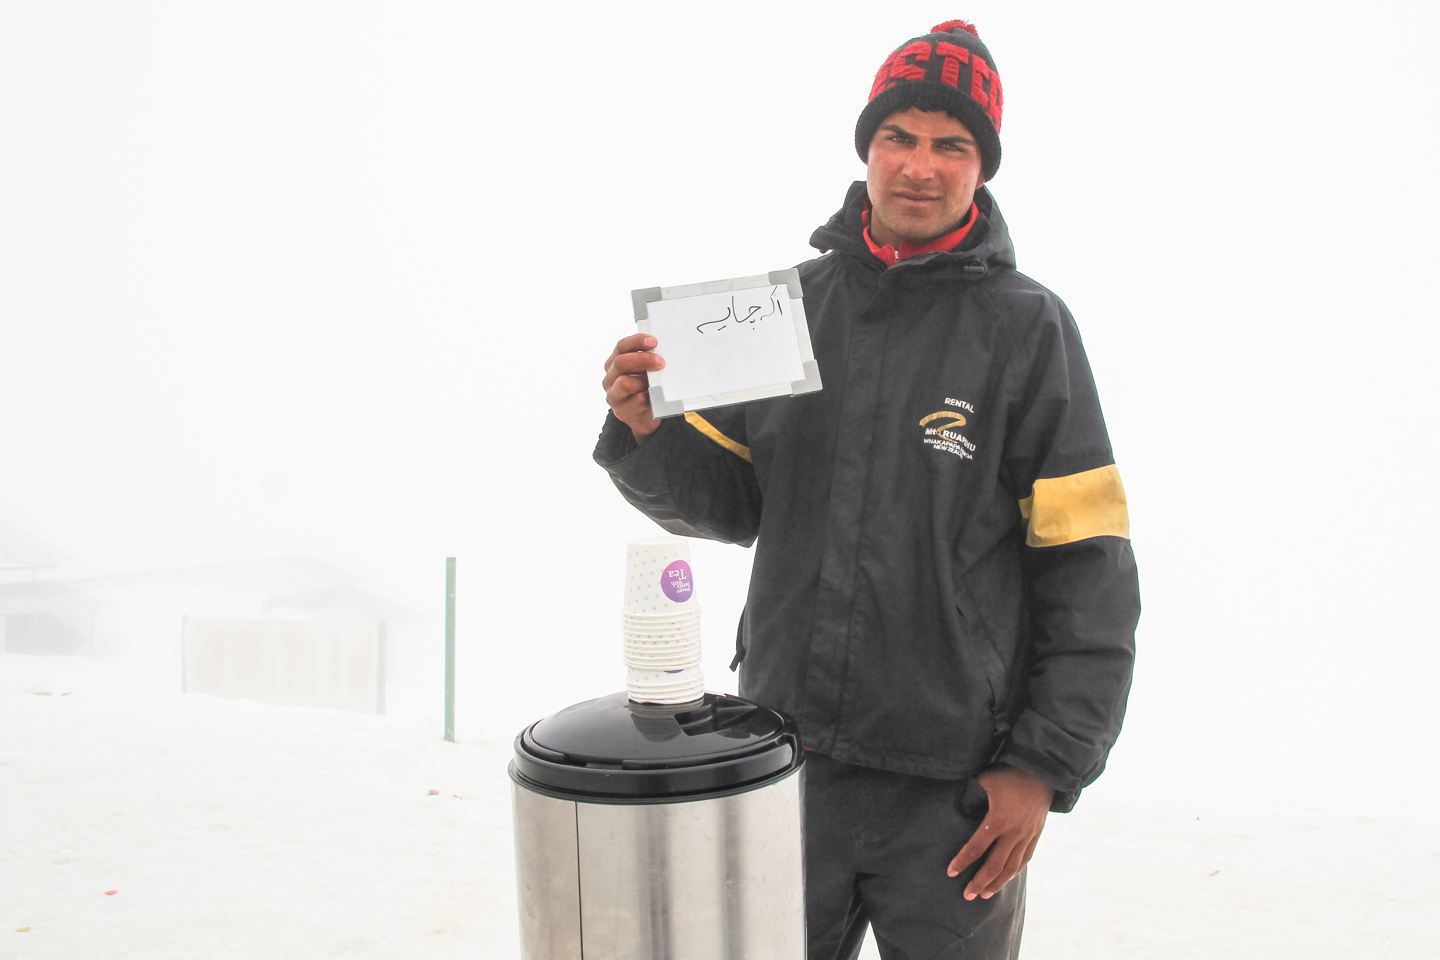 Javed sells chai, coffee, and snacks next to the first cable car stop at Gulmarg, a popular skiing spot in Kashmir. In the three years that he has sold chai, he's noticed that while most foreign tourists come to ski, many Indian visitors prefer to take in the sights and enjoy sledge rides down the mountain.